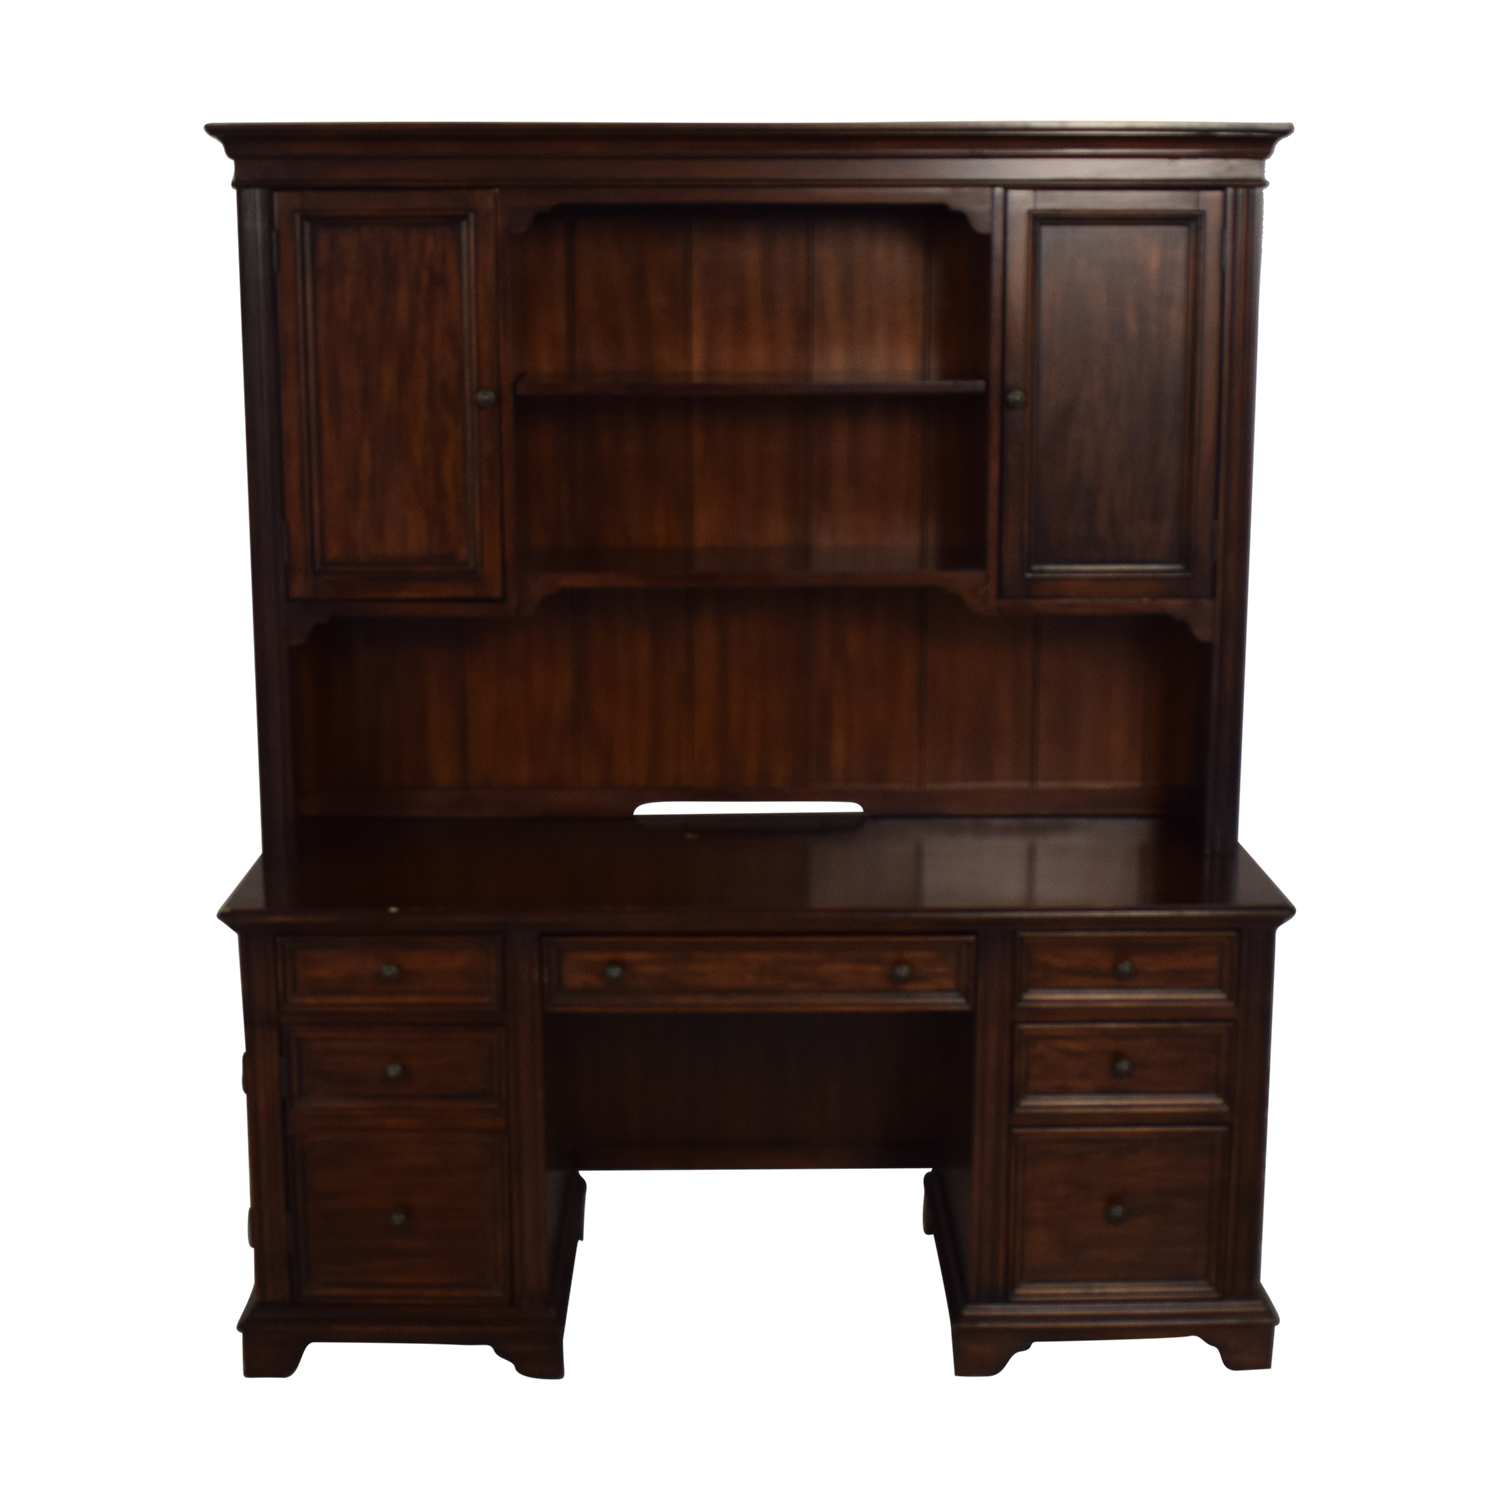 Home Meridian Home Meridian Monarch Credenza Hutch coupon